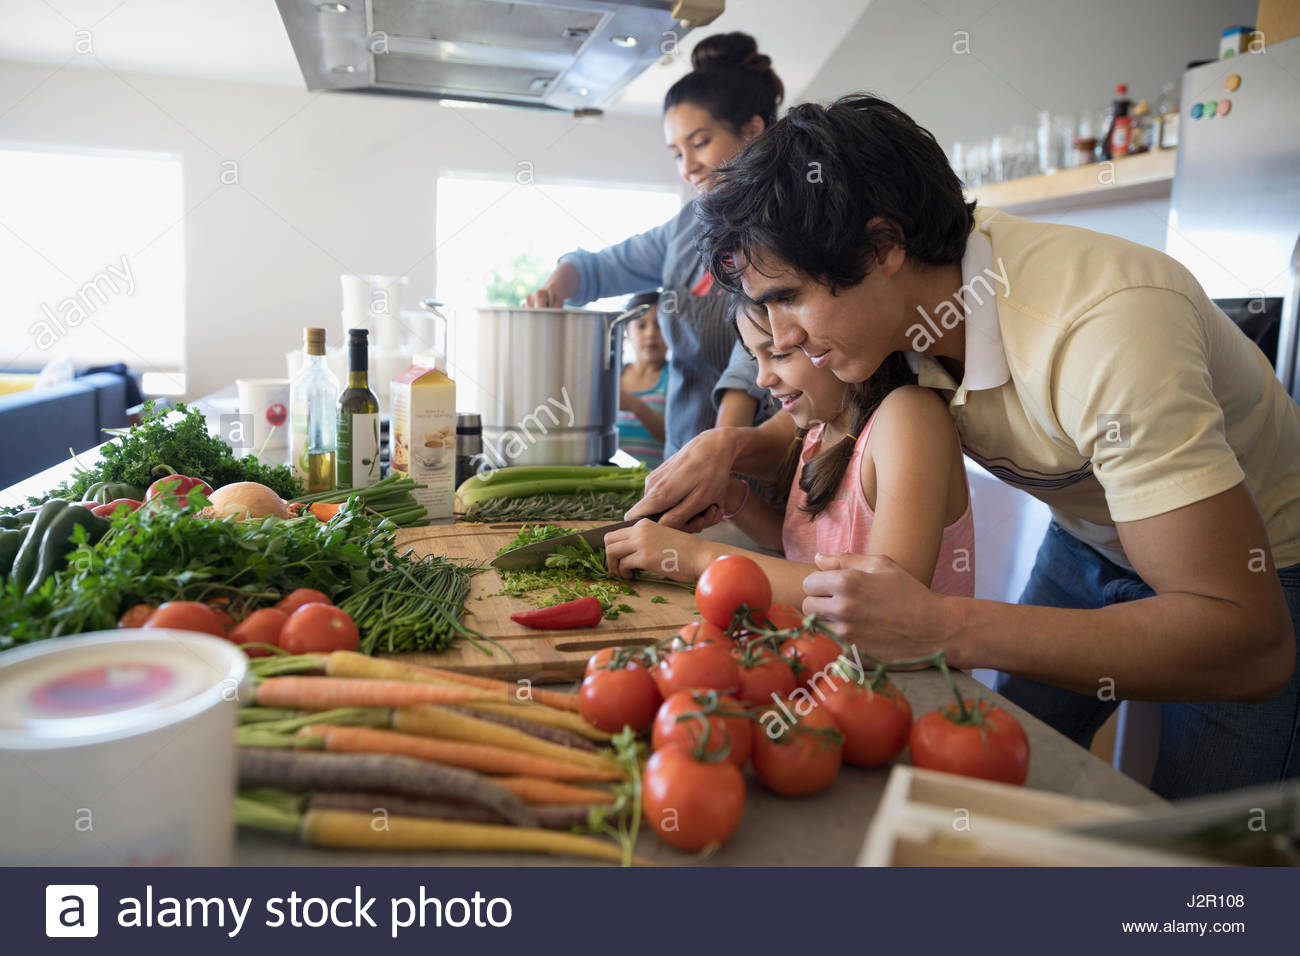 Family cooking, cutting vegetables in kitchen - Stock Image